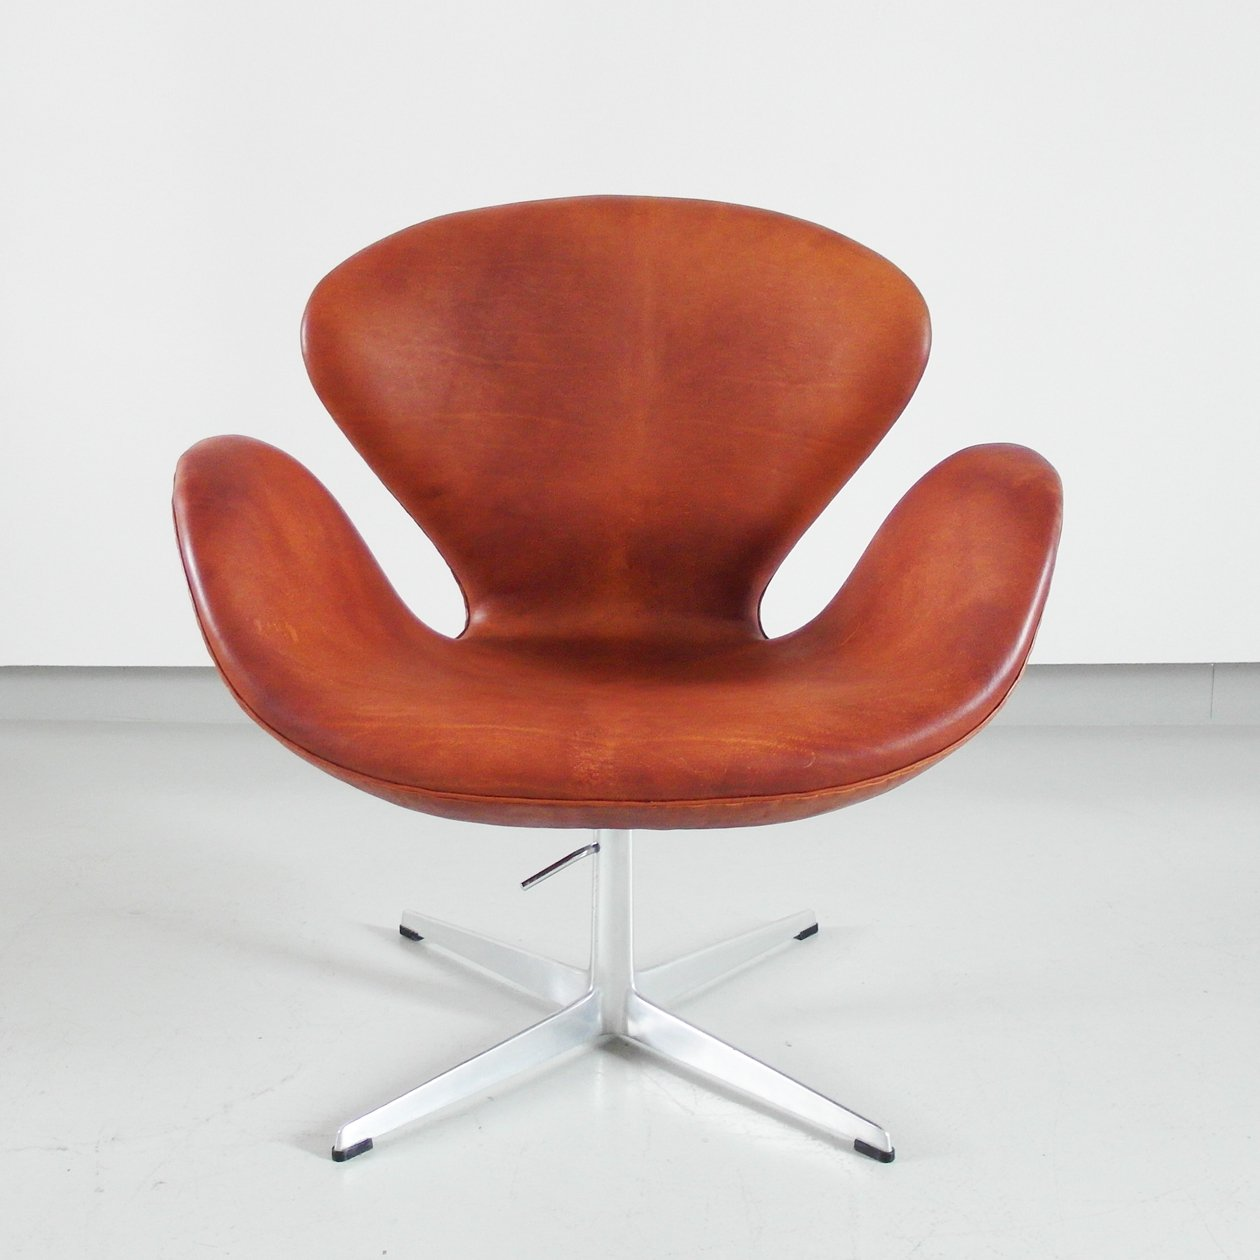 Arne Jacobsen Swan Chair Patinated Swan Chair By Arne Jacobsen, Edition 1975 | #89644